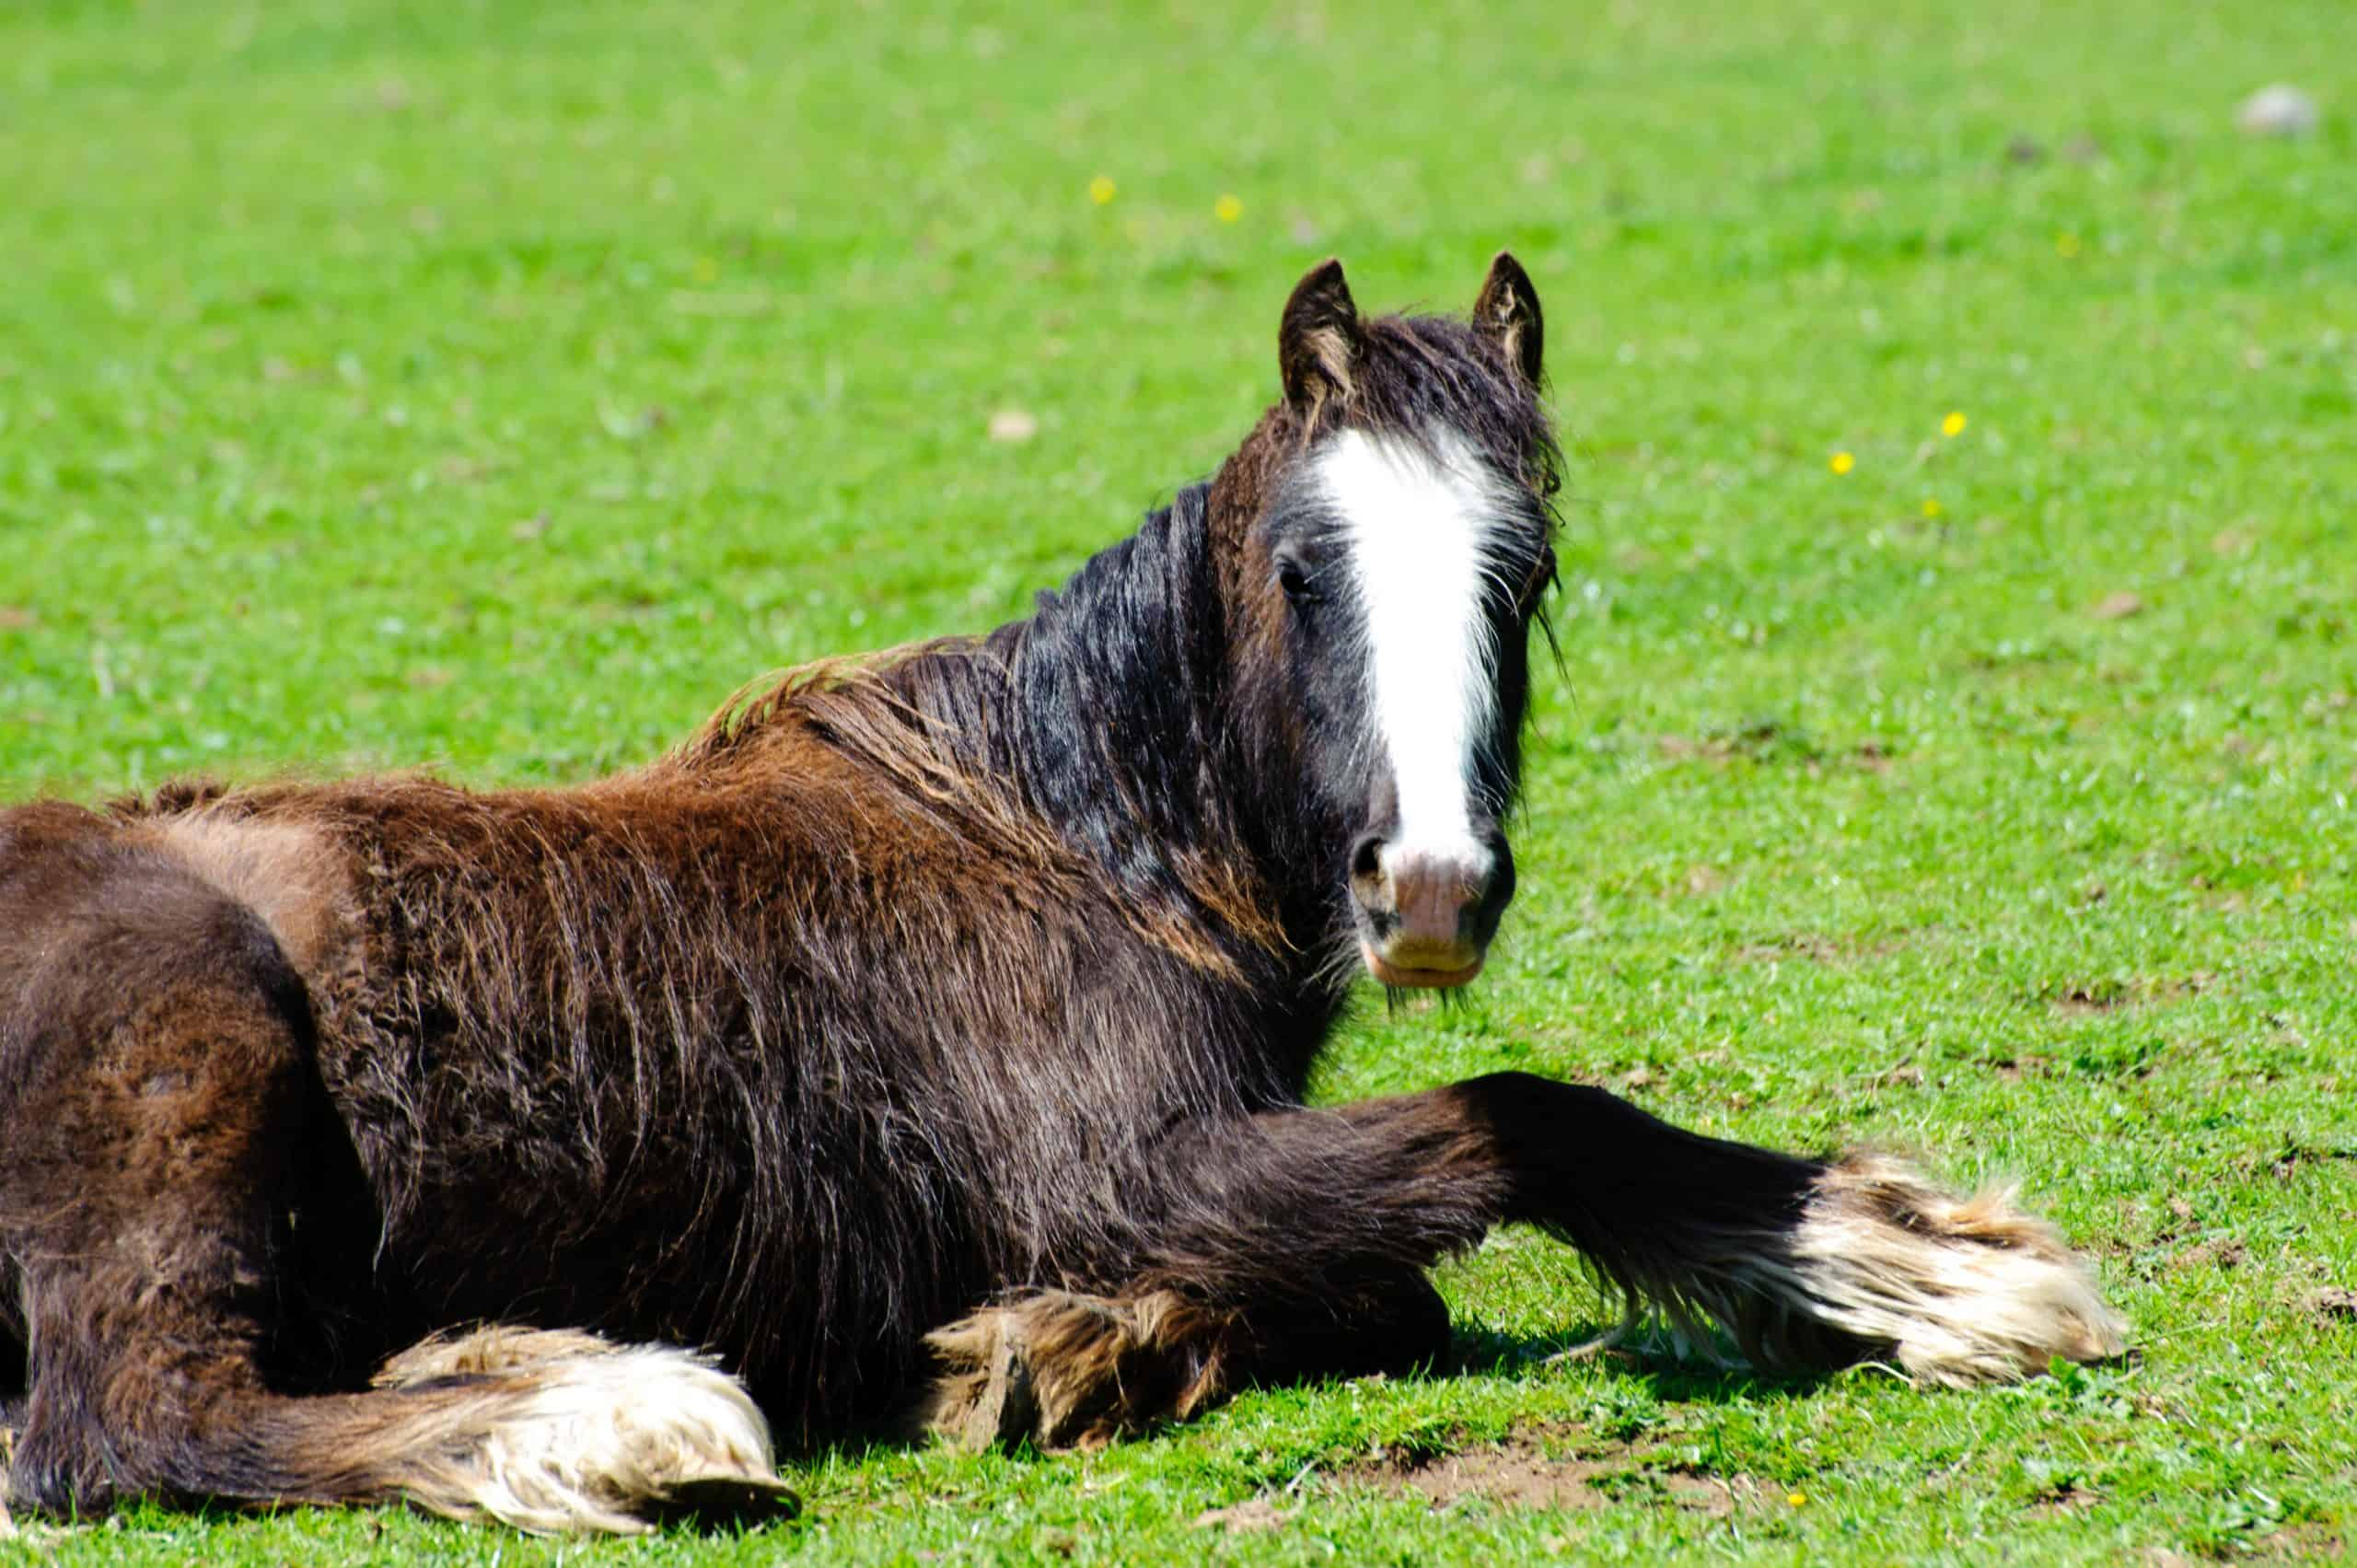 Rescued neglected horse resting and recovering in a green field.